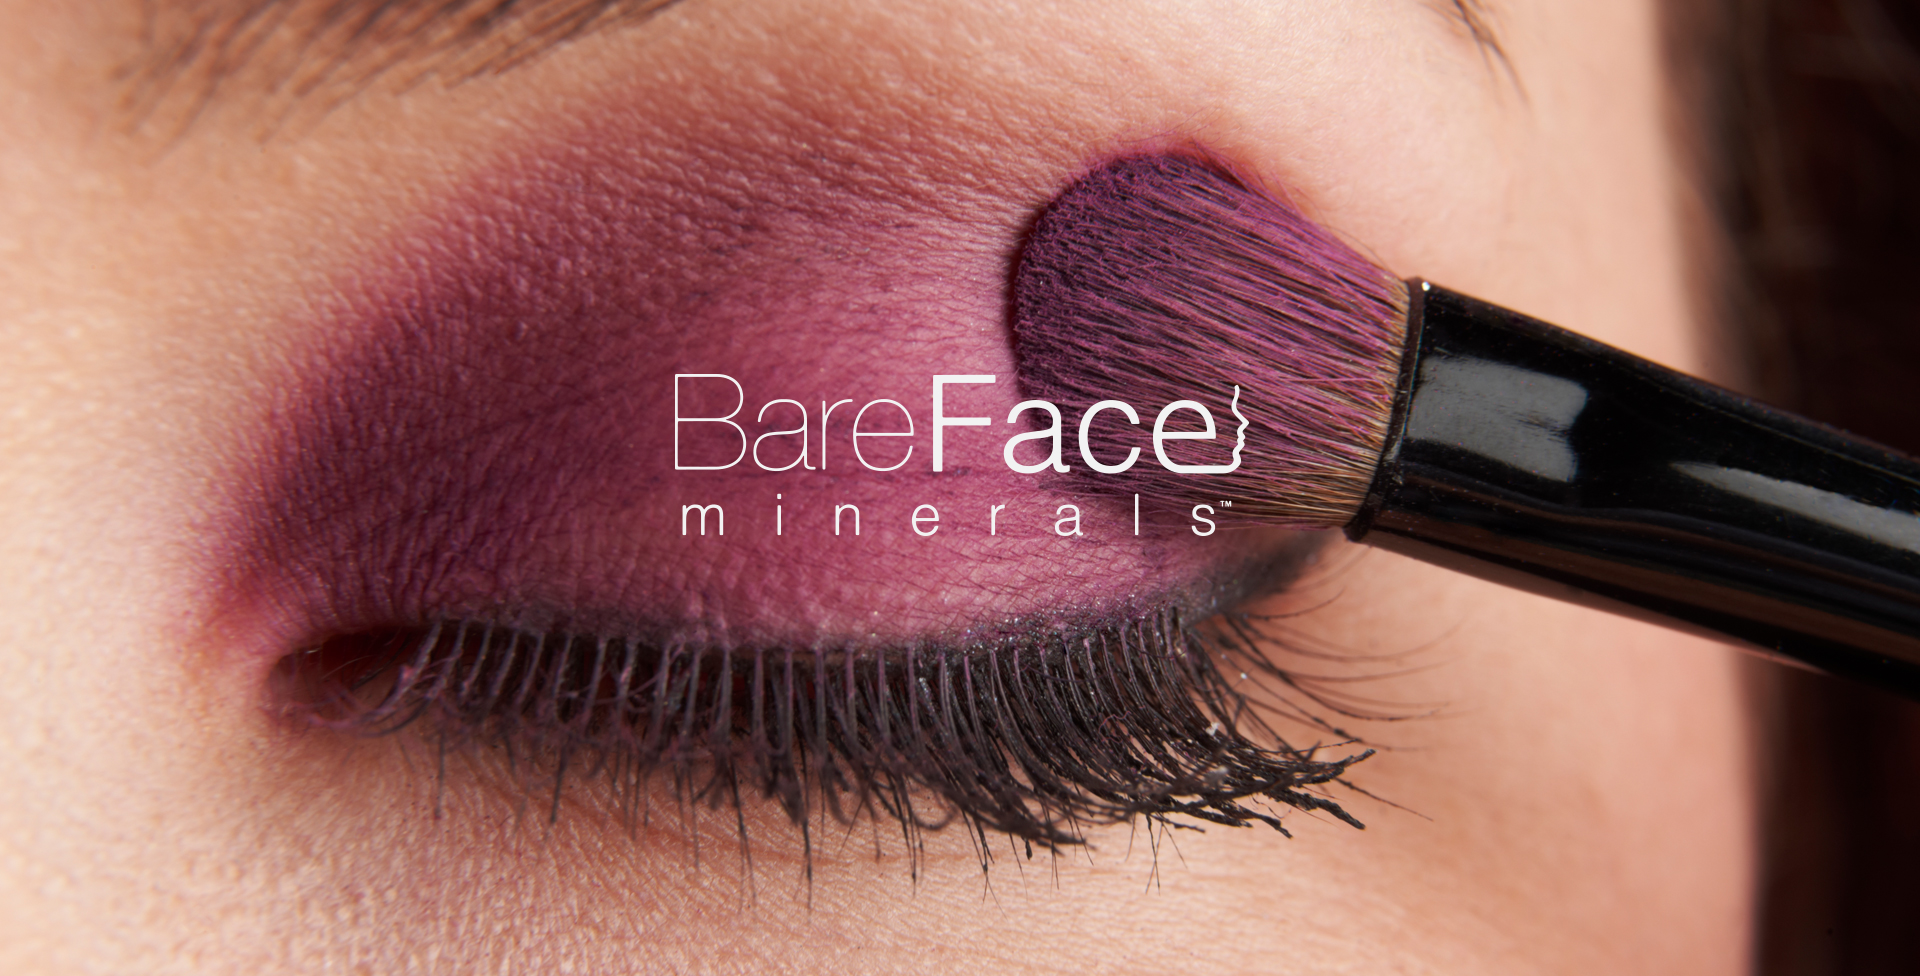 Bareface Minerals